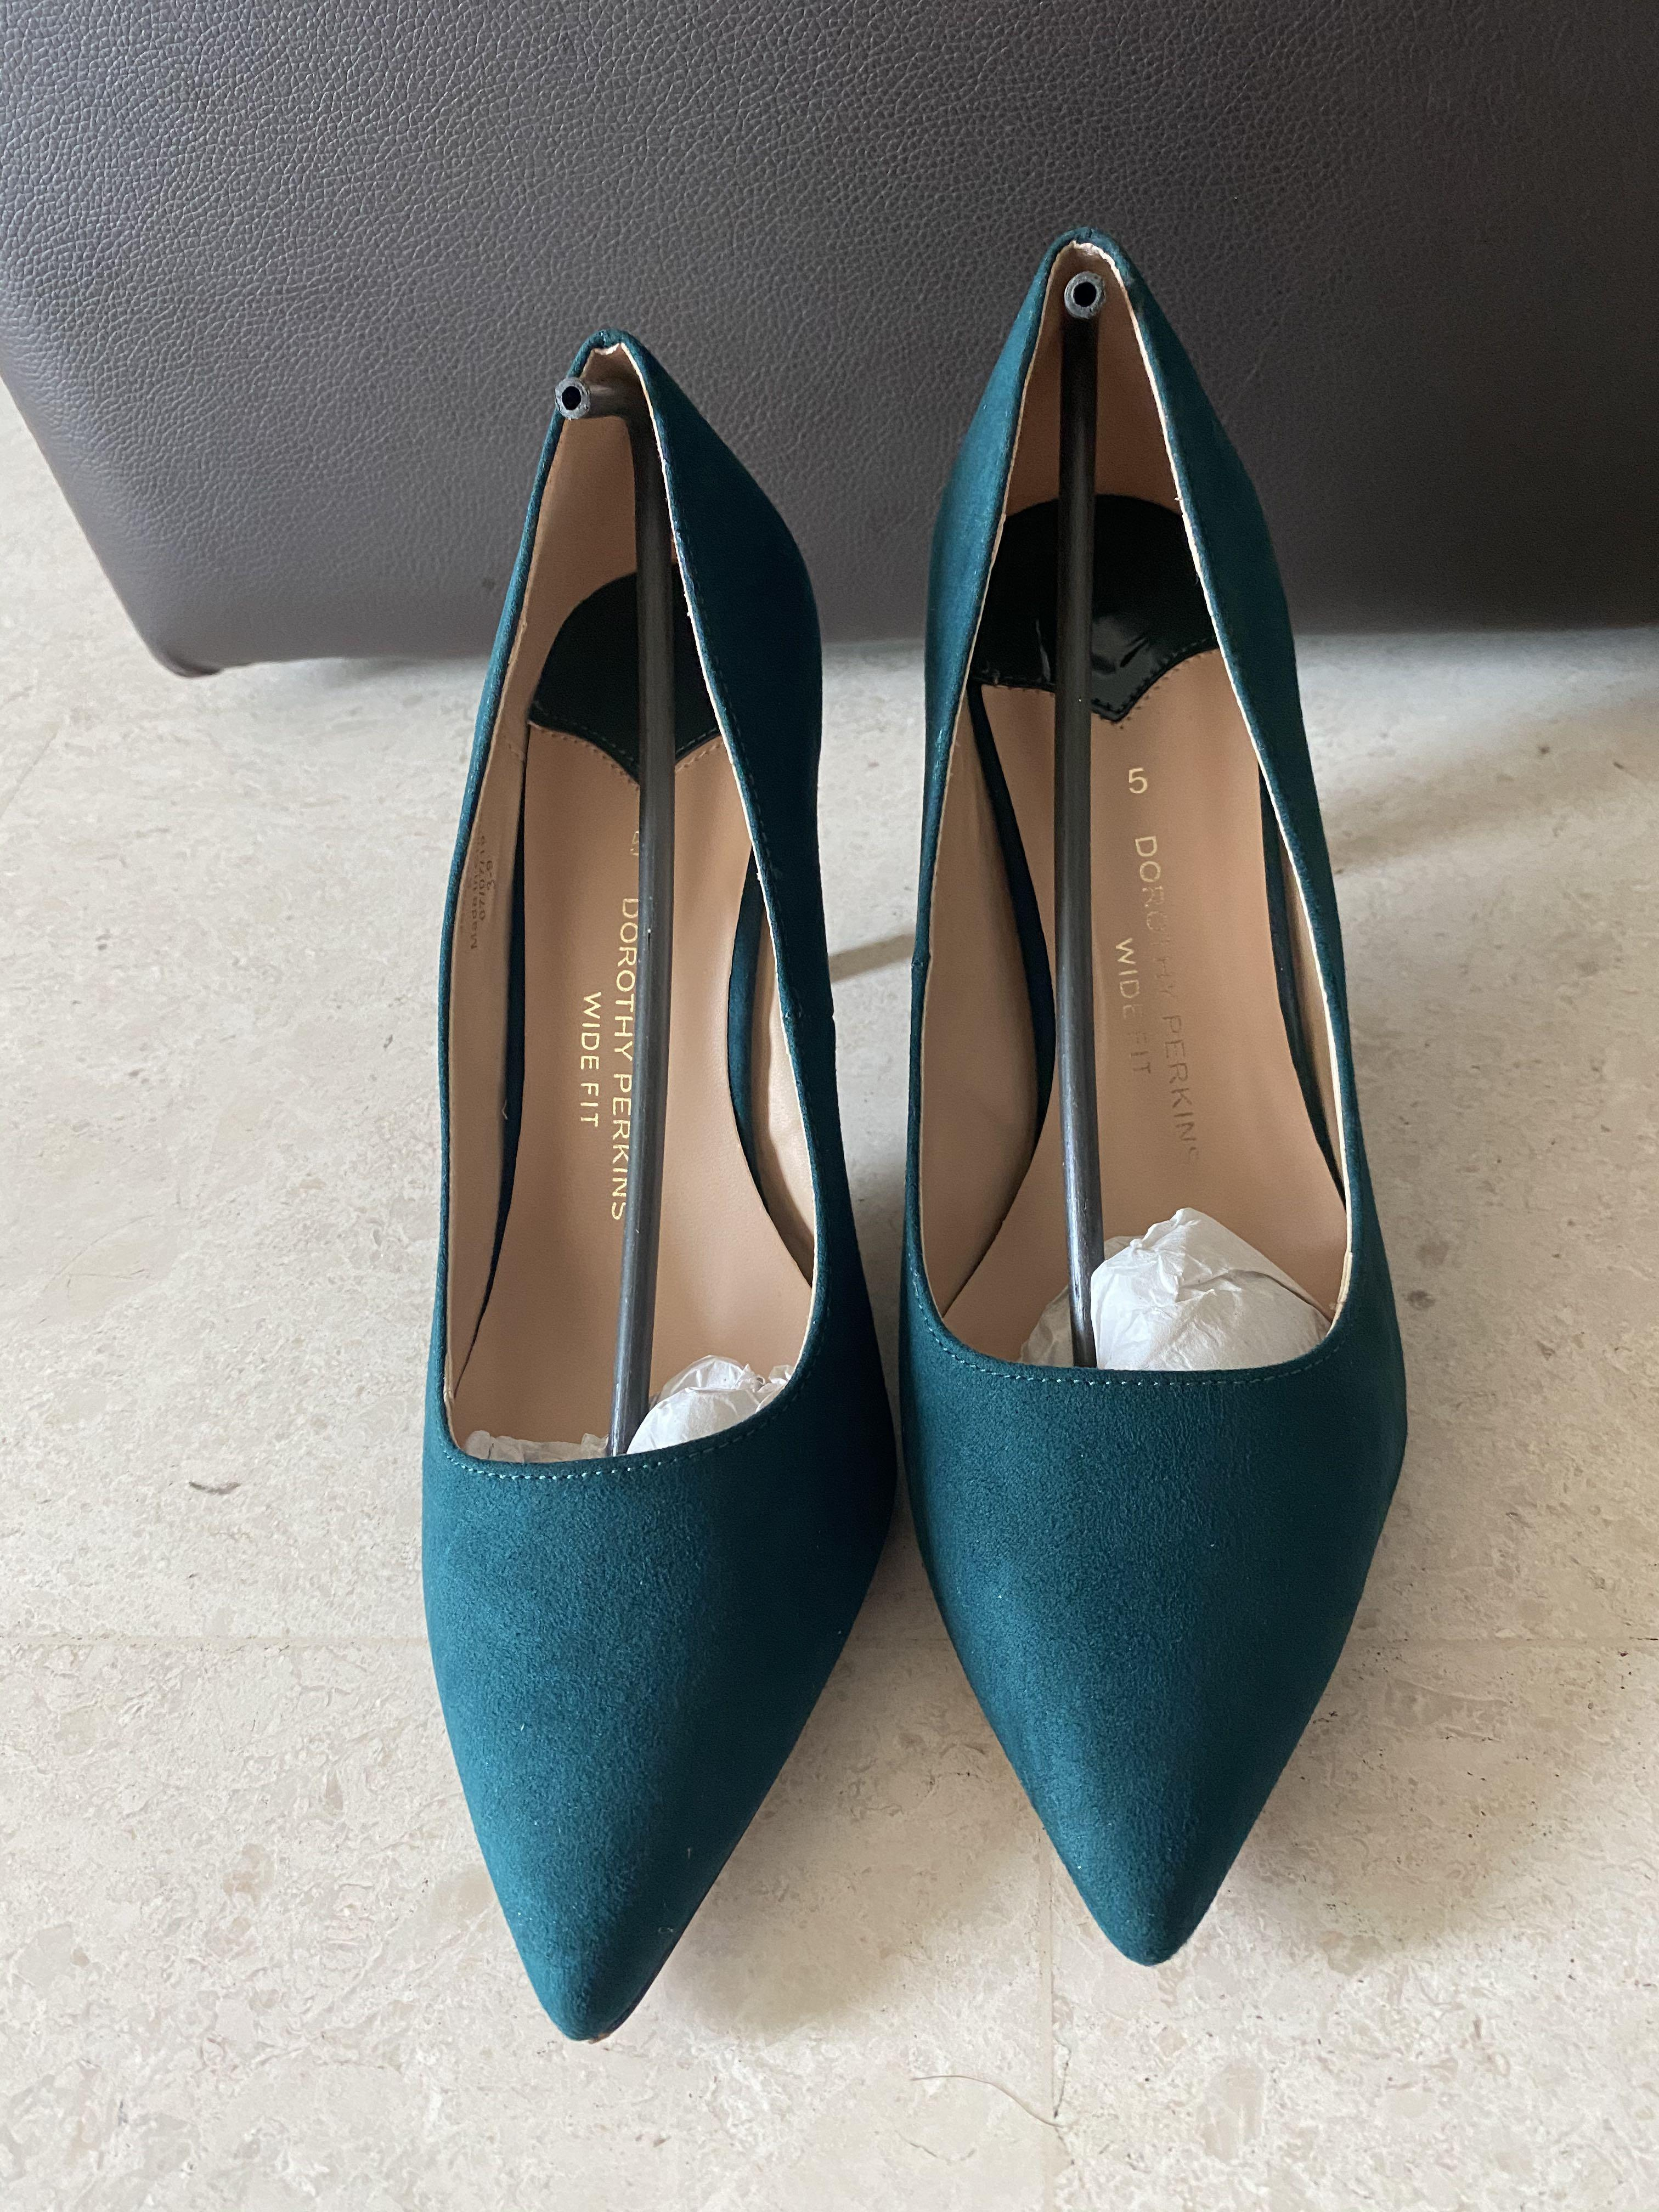 teal wide fit shoes with heels for work